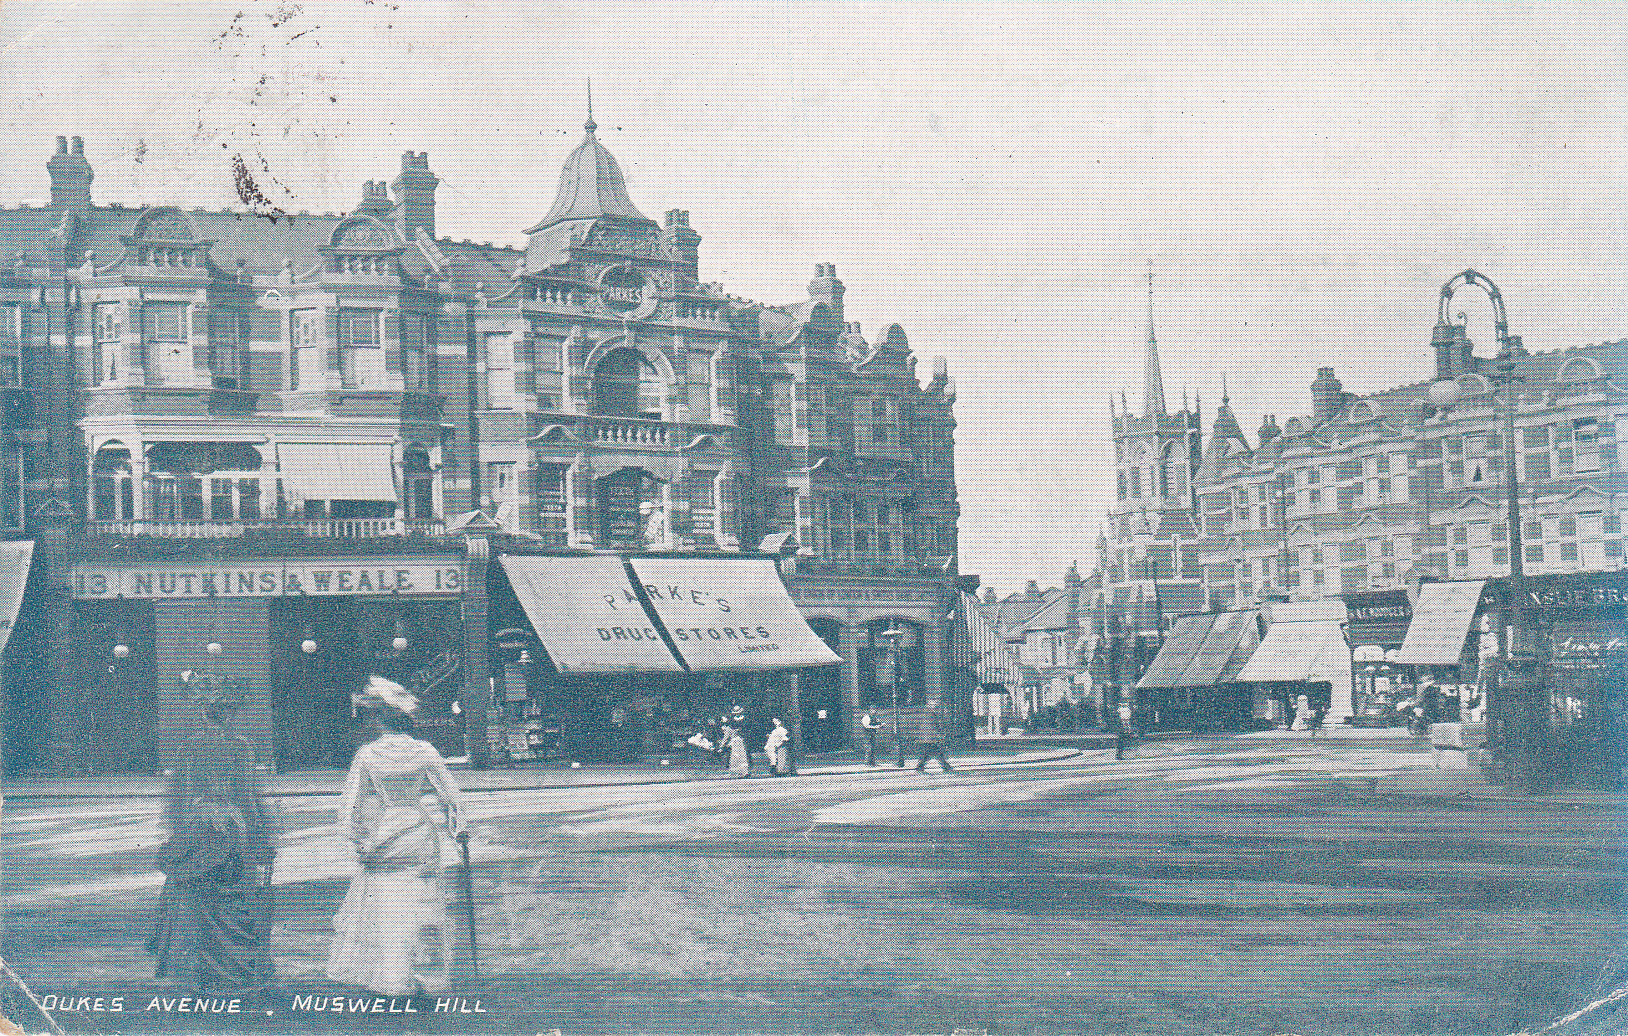 Muswell Hill Roundabout 1903